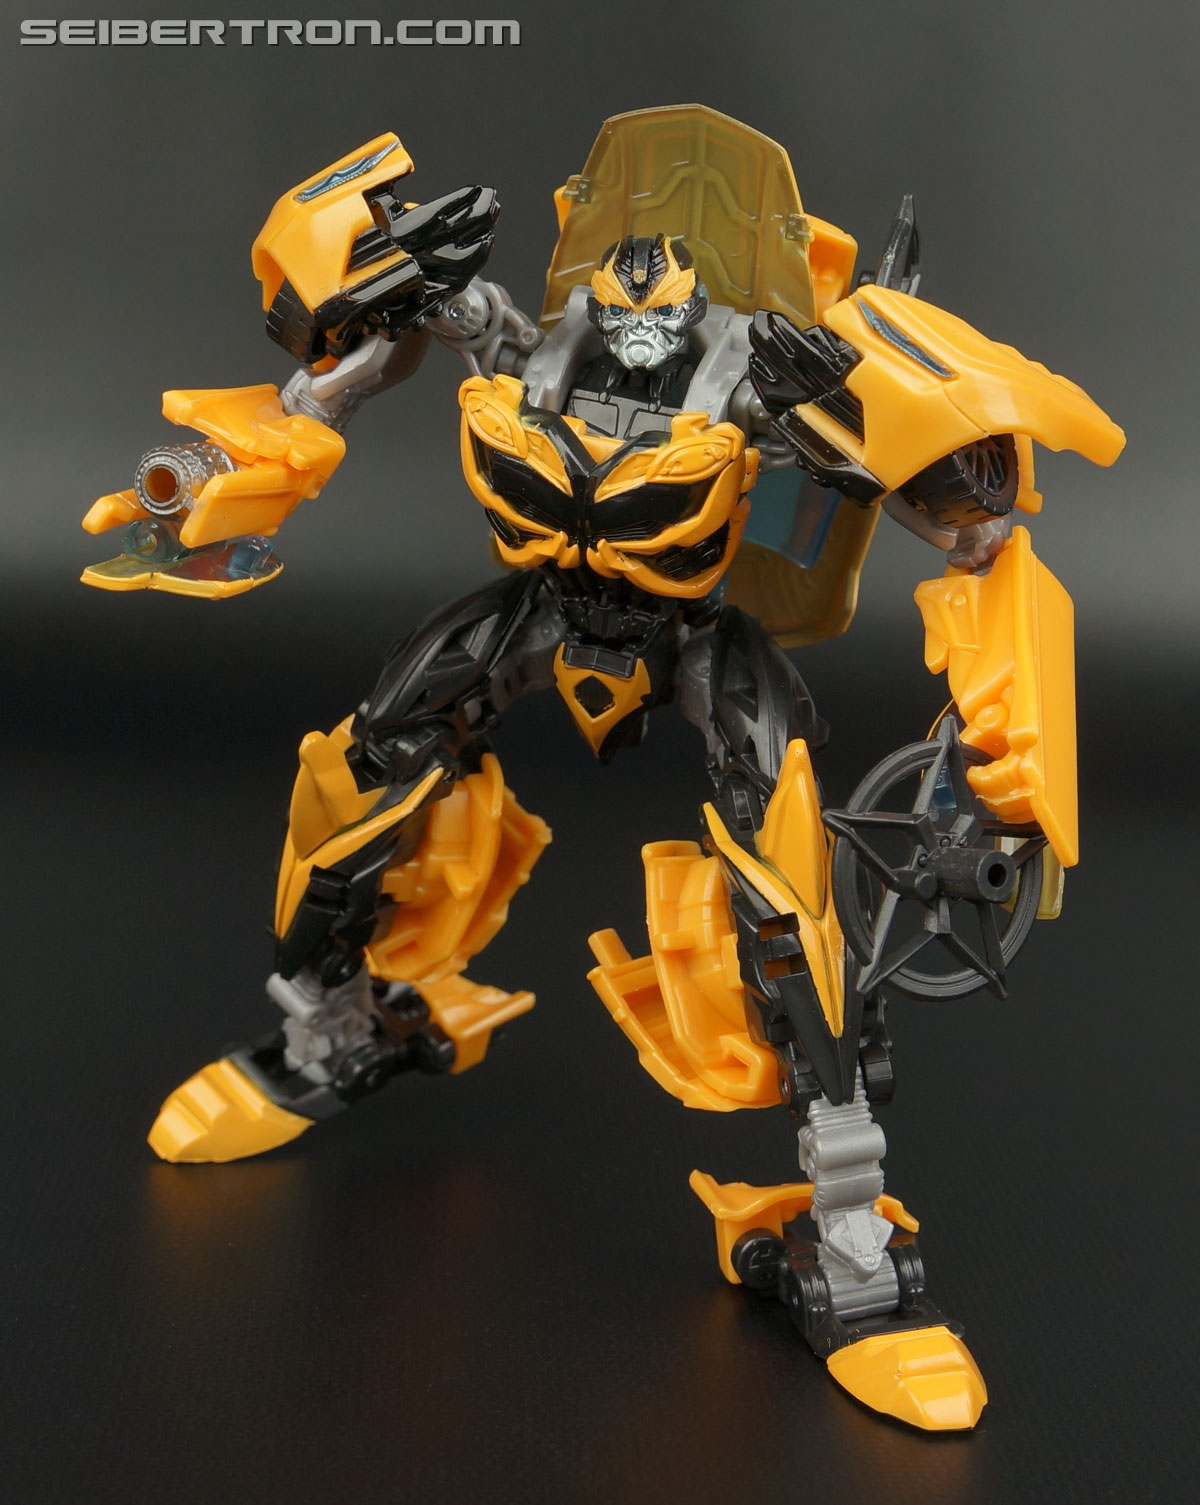 Transformers Age of Extinction: Generations Bumblebee (Image #109 of 190)